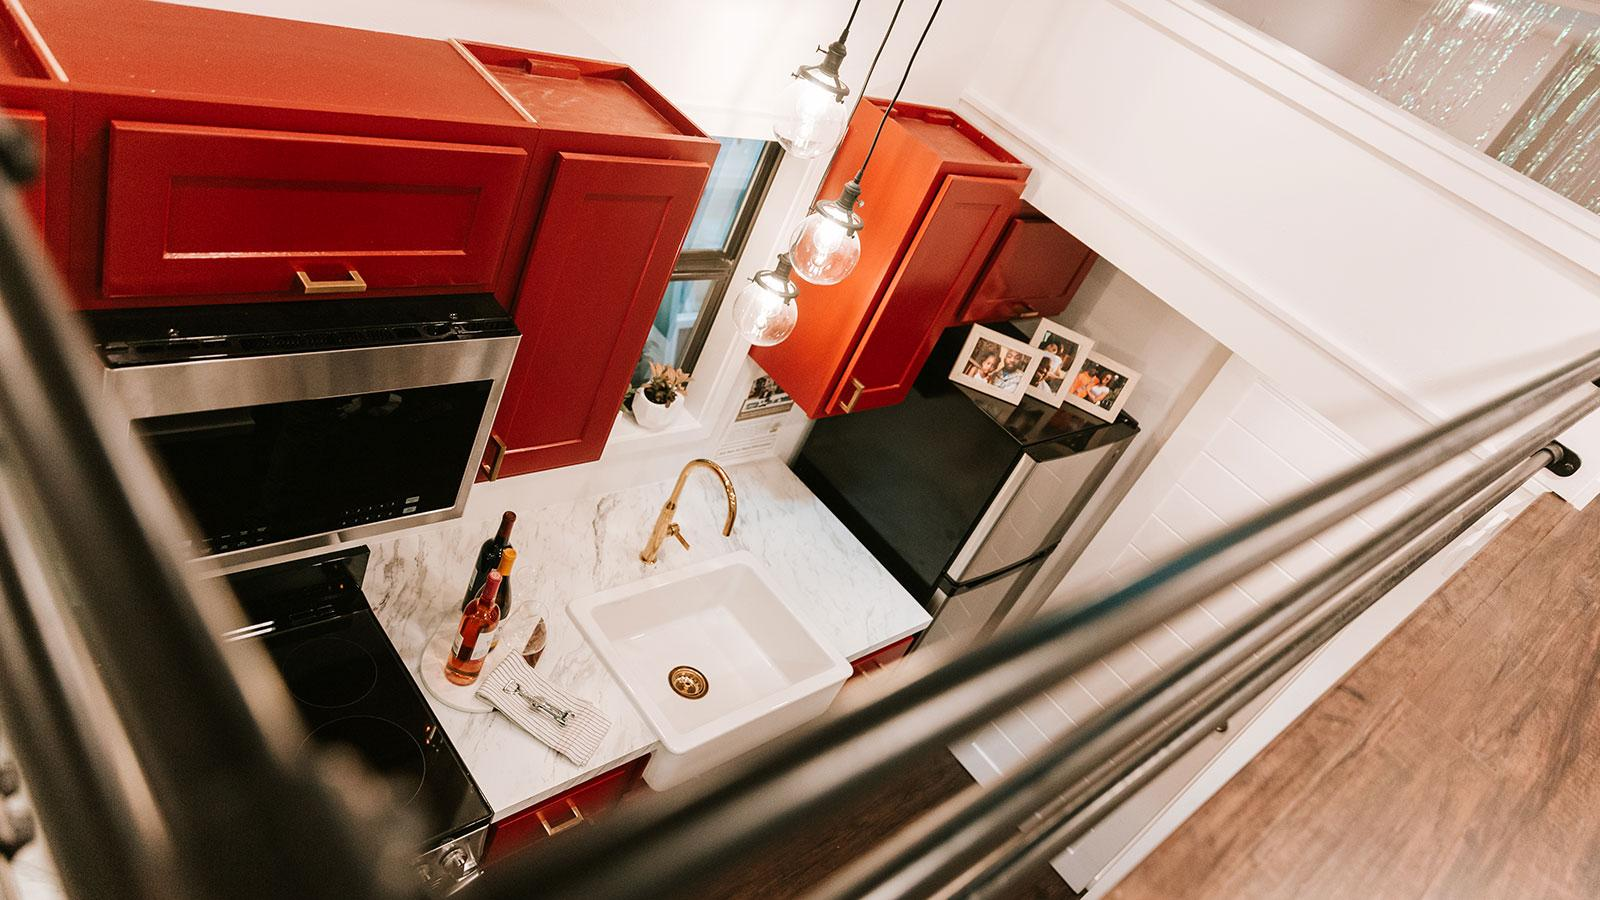 Inside the Inniss family tiny home